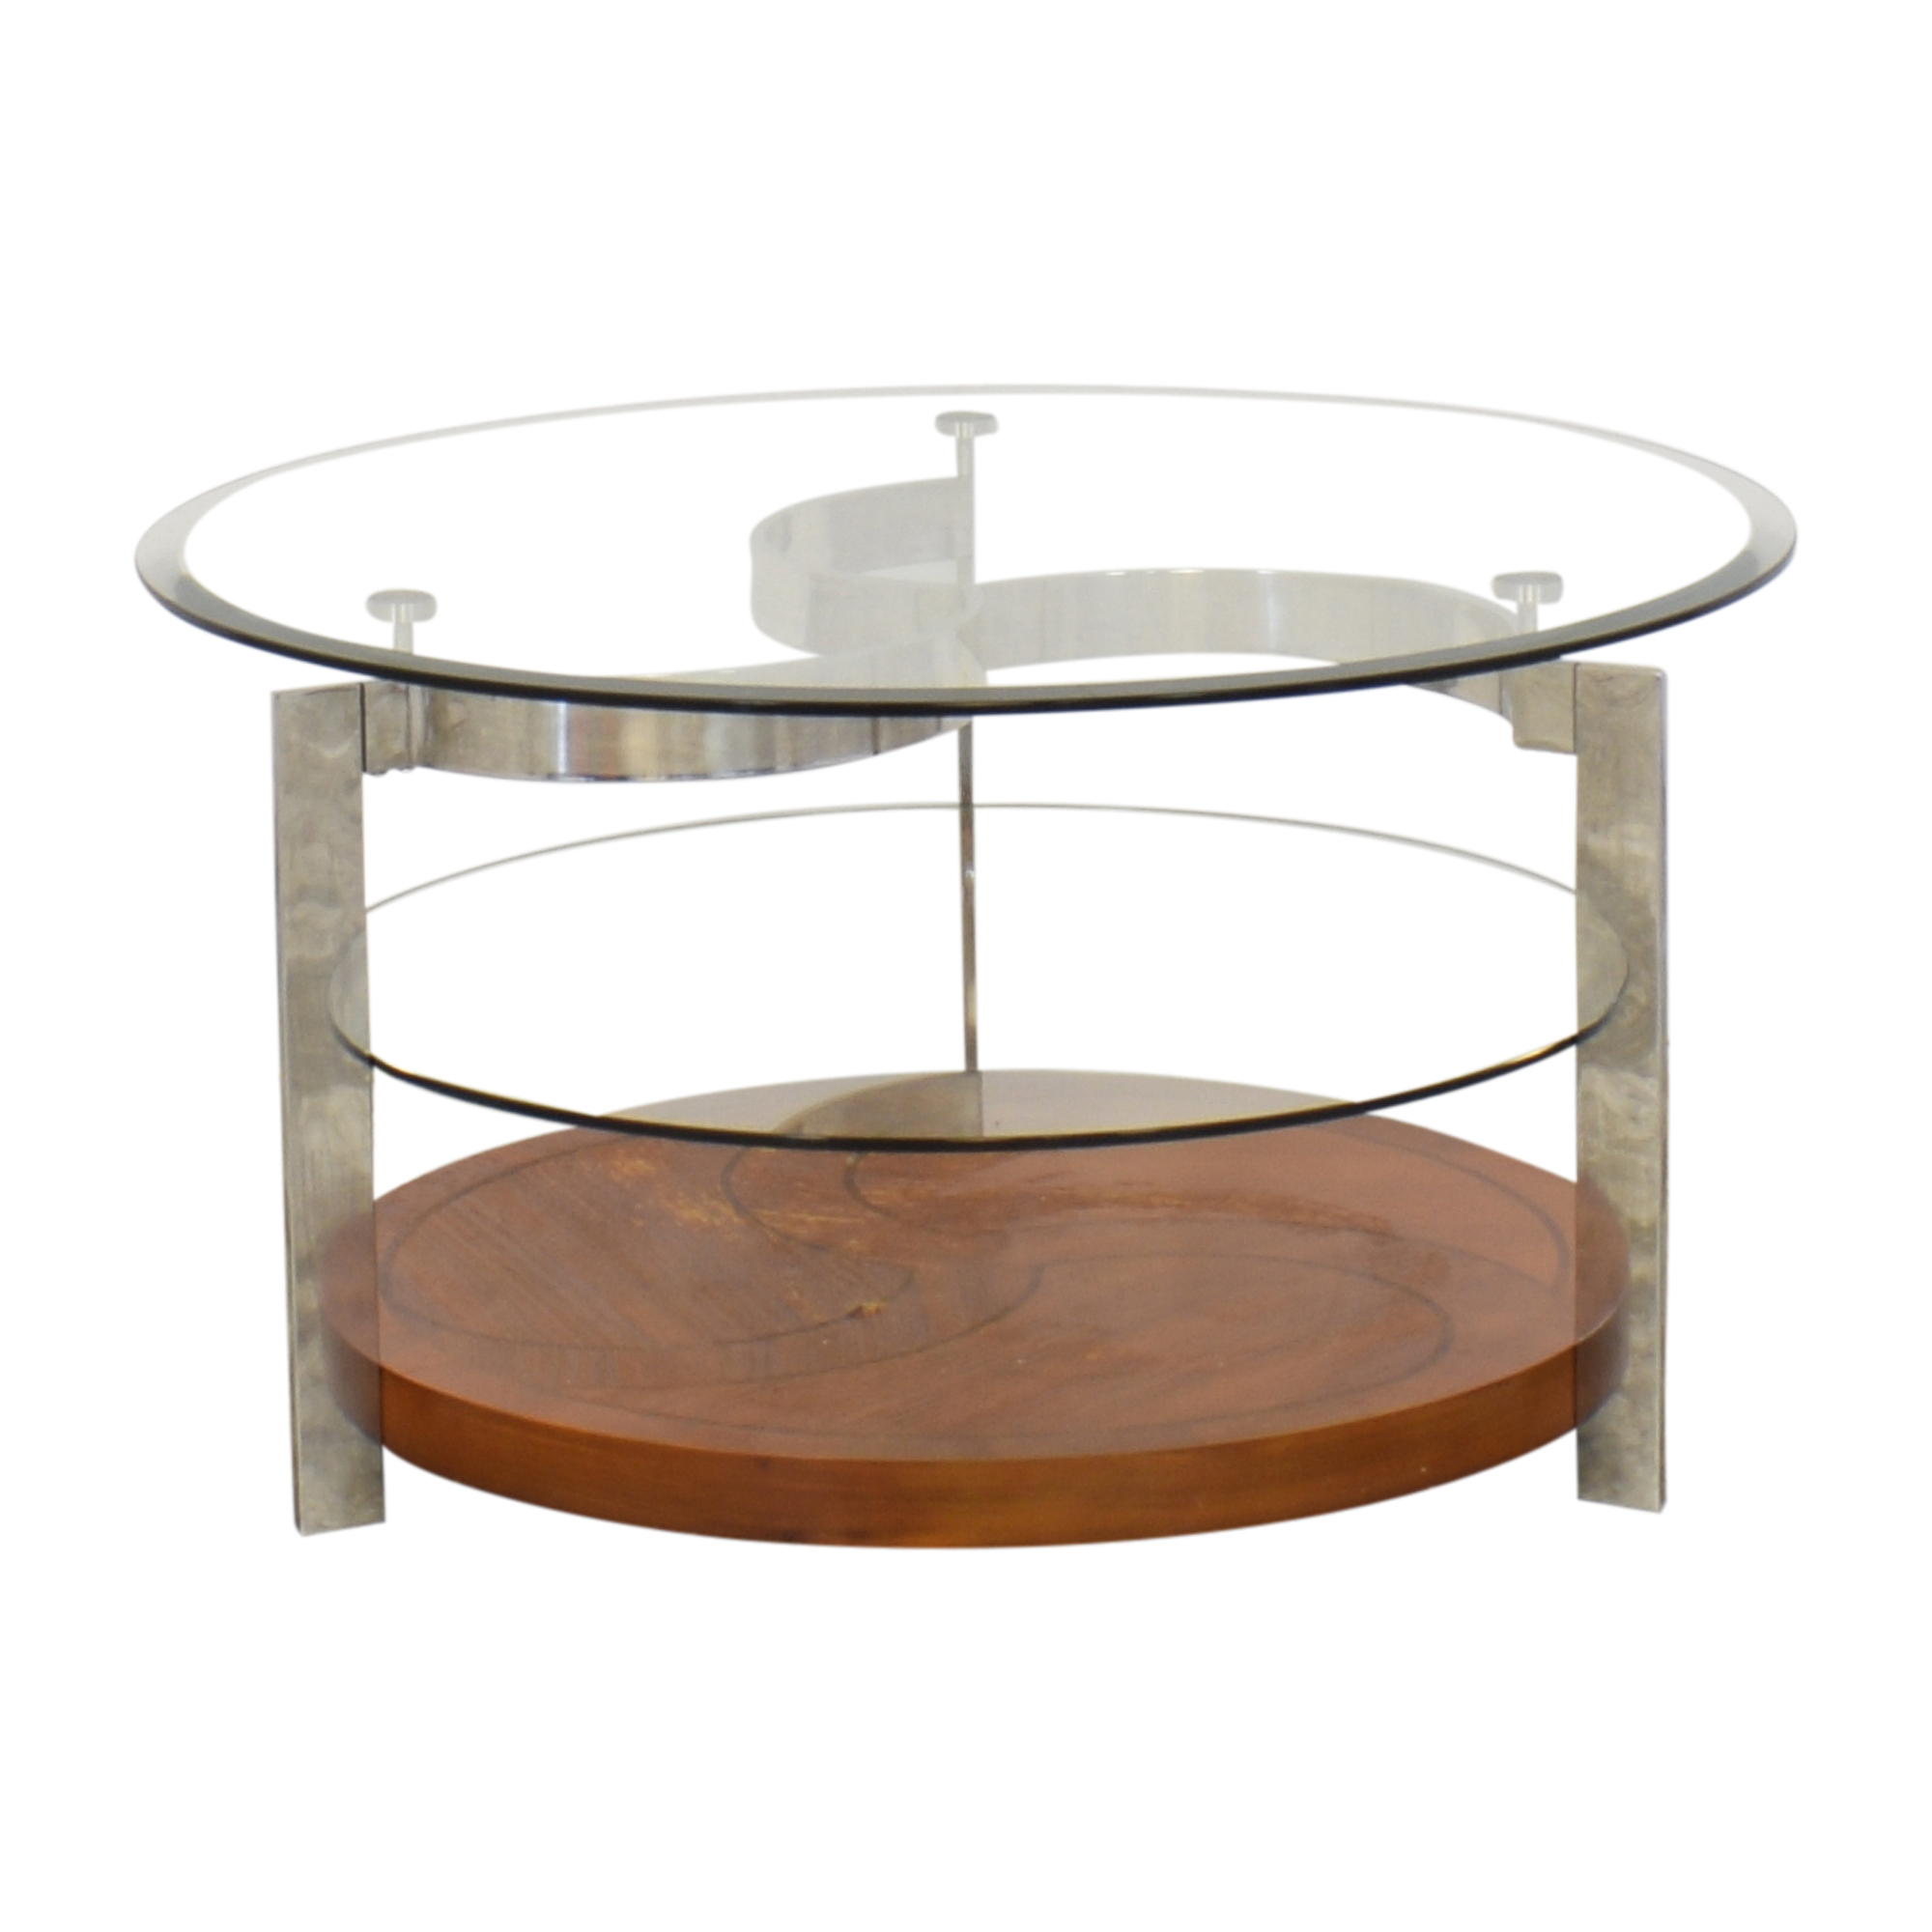 Round Tiered Coffee Table nj